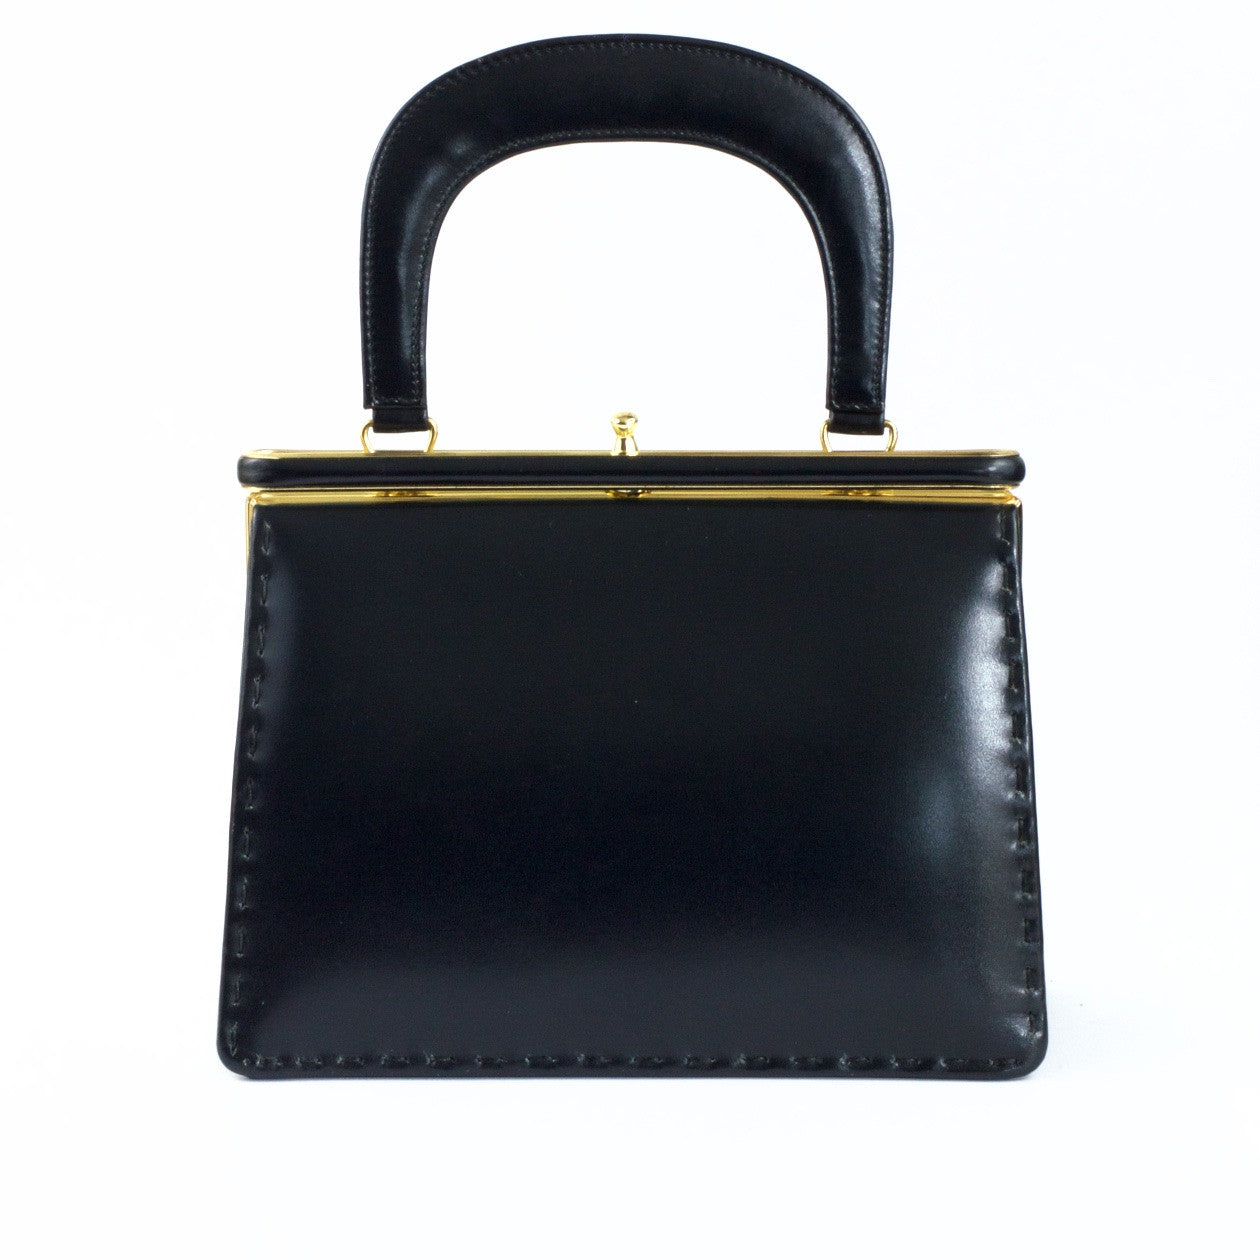 Vintage dark navy leather handbag by Widegate London